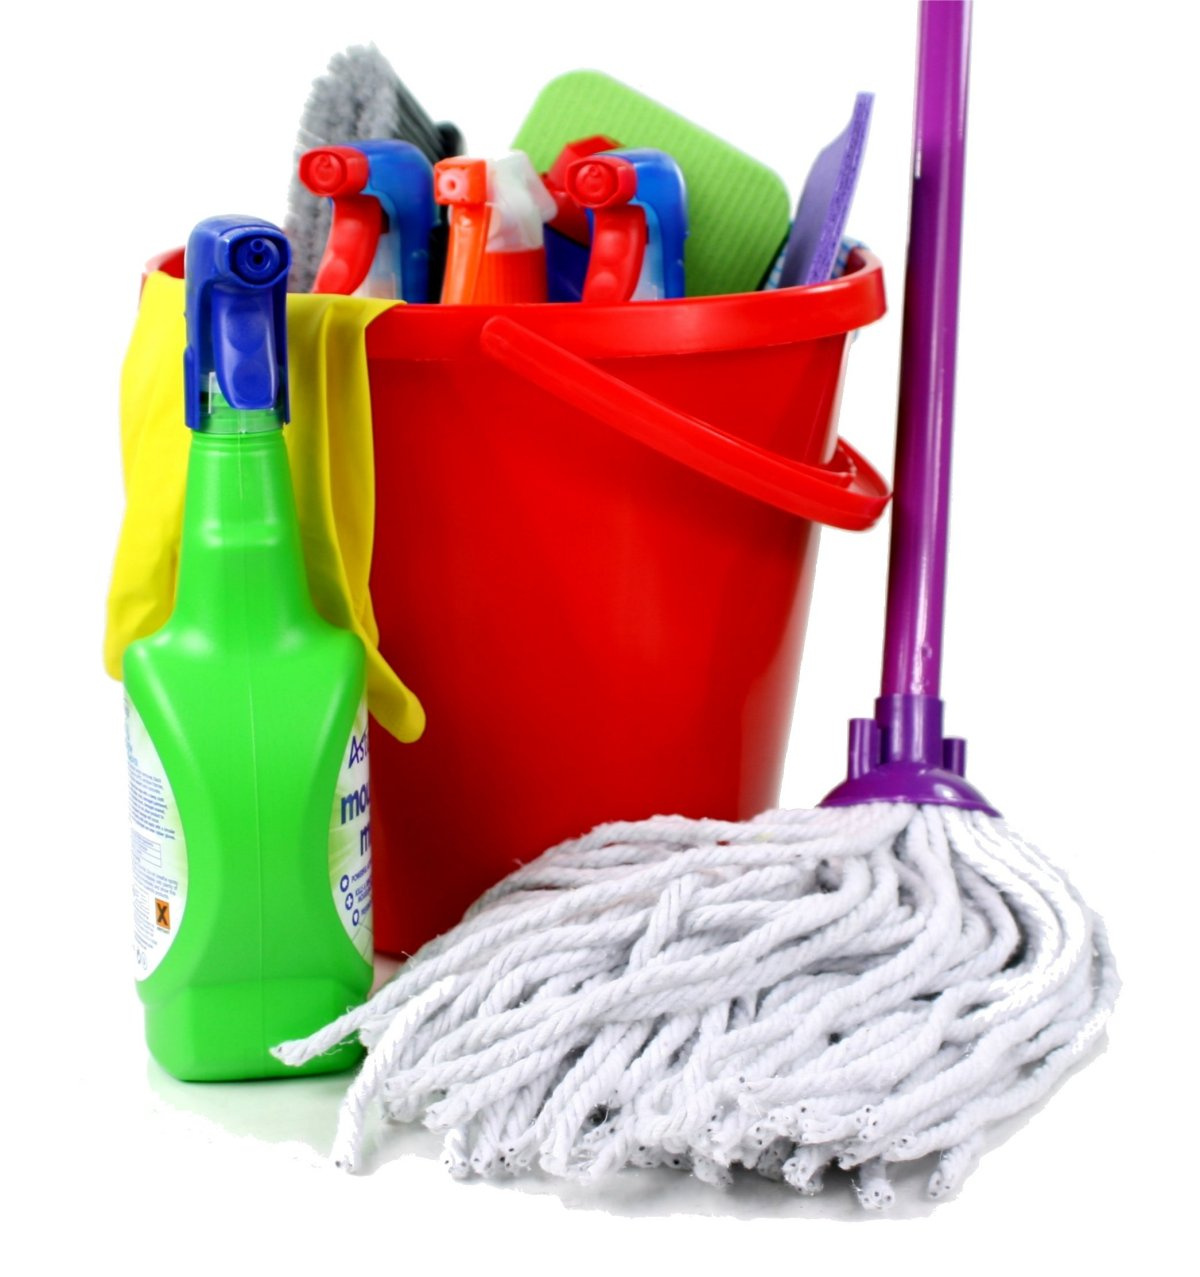 Established Residential Cleaning Business